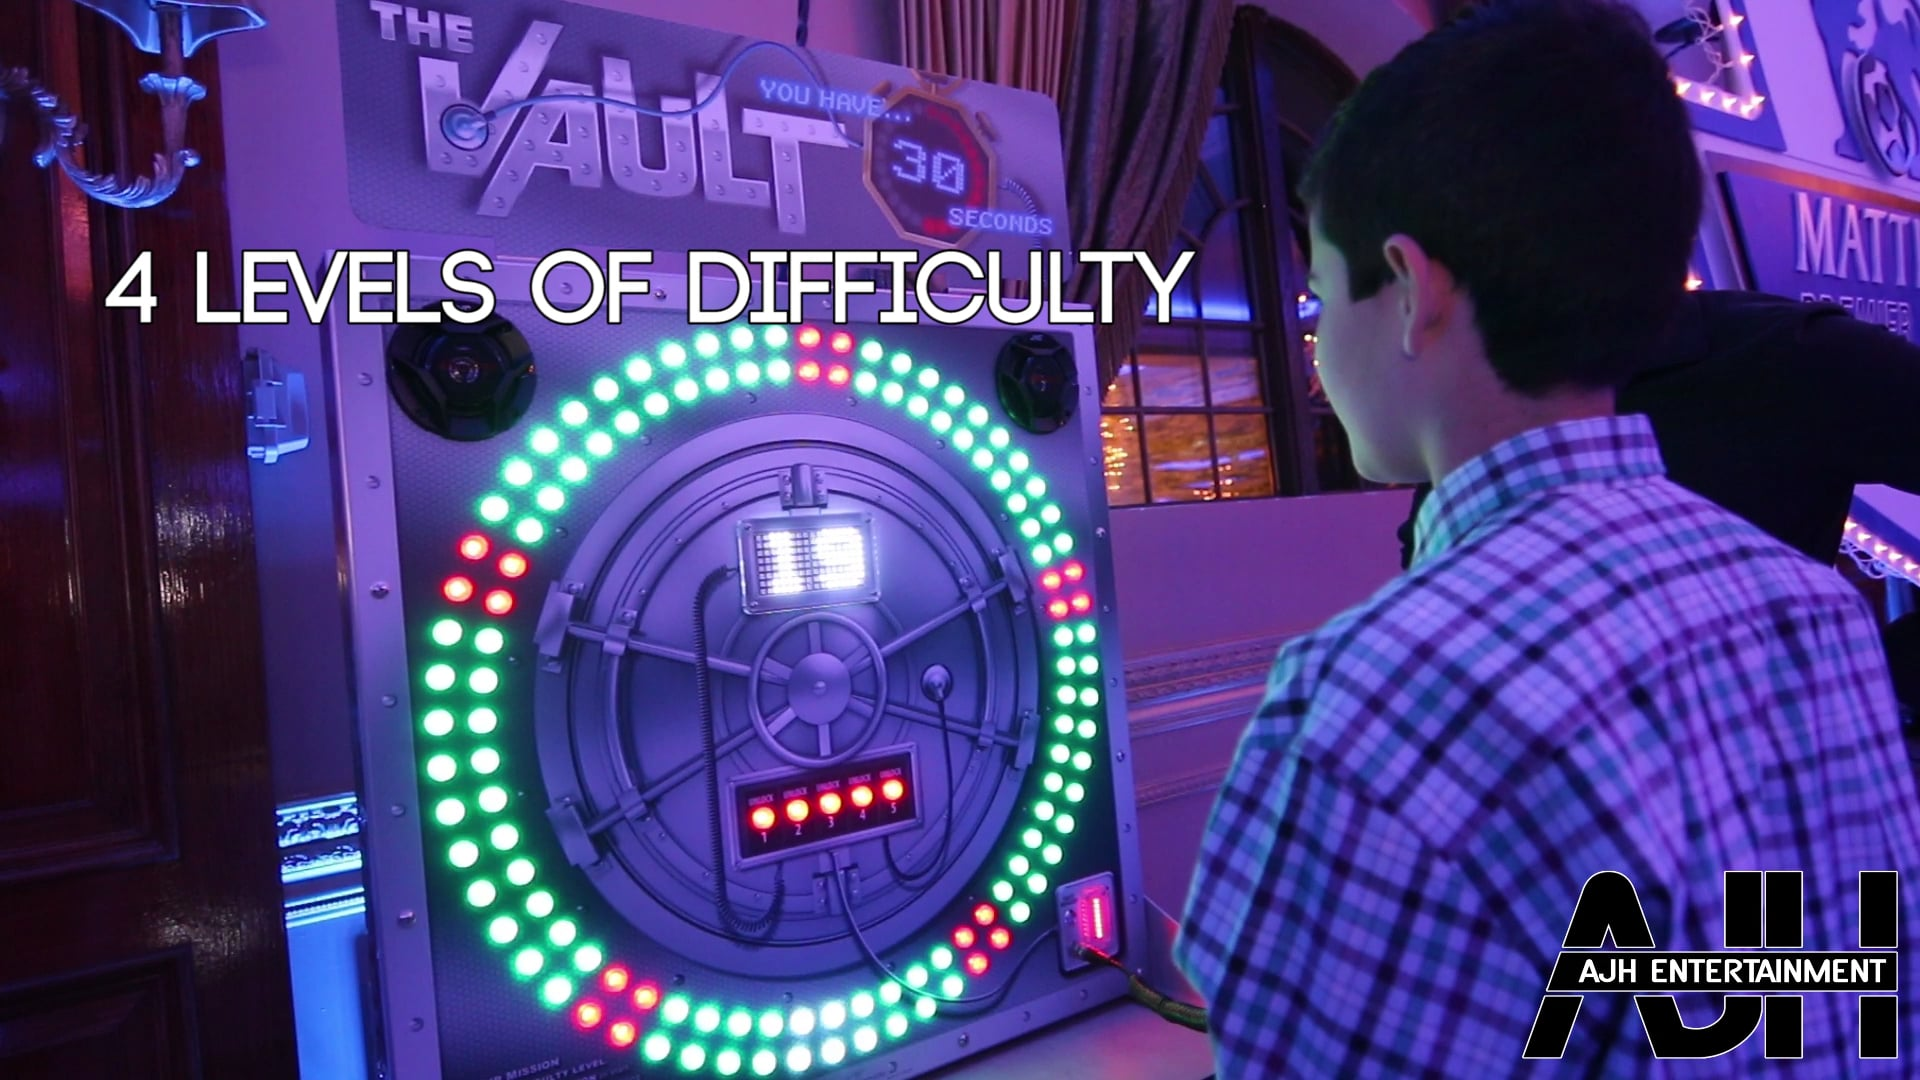 Extra Entertainment: The Vault